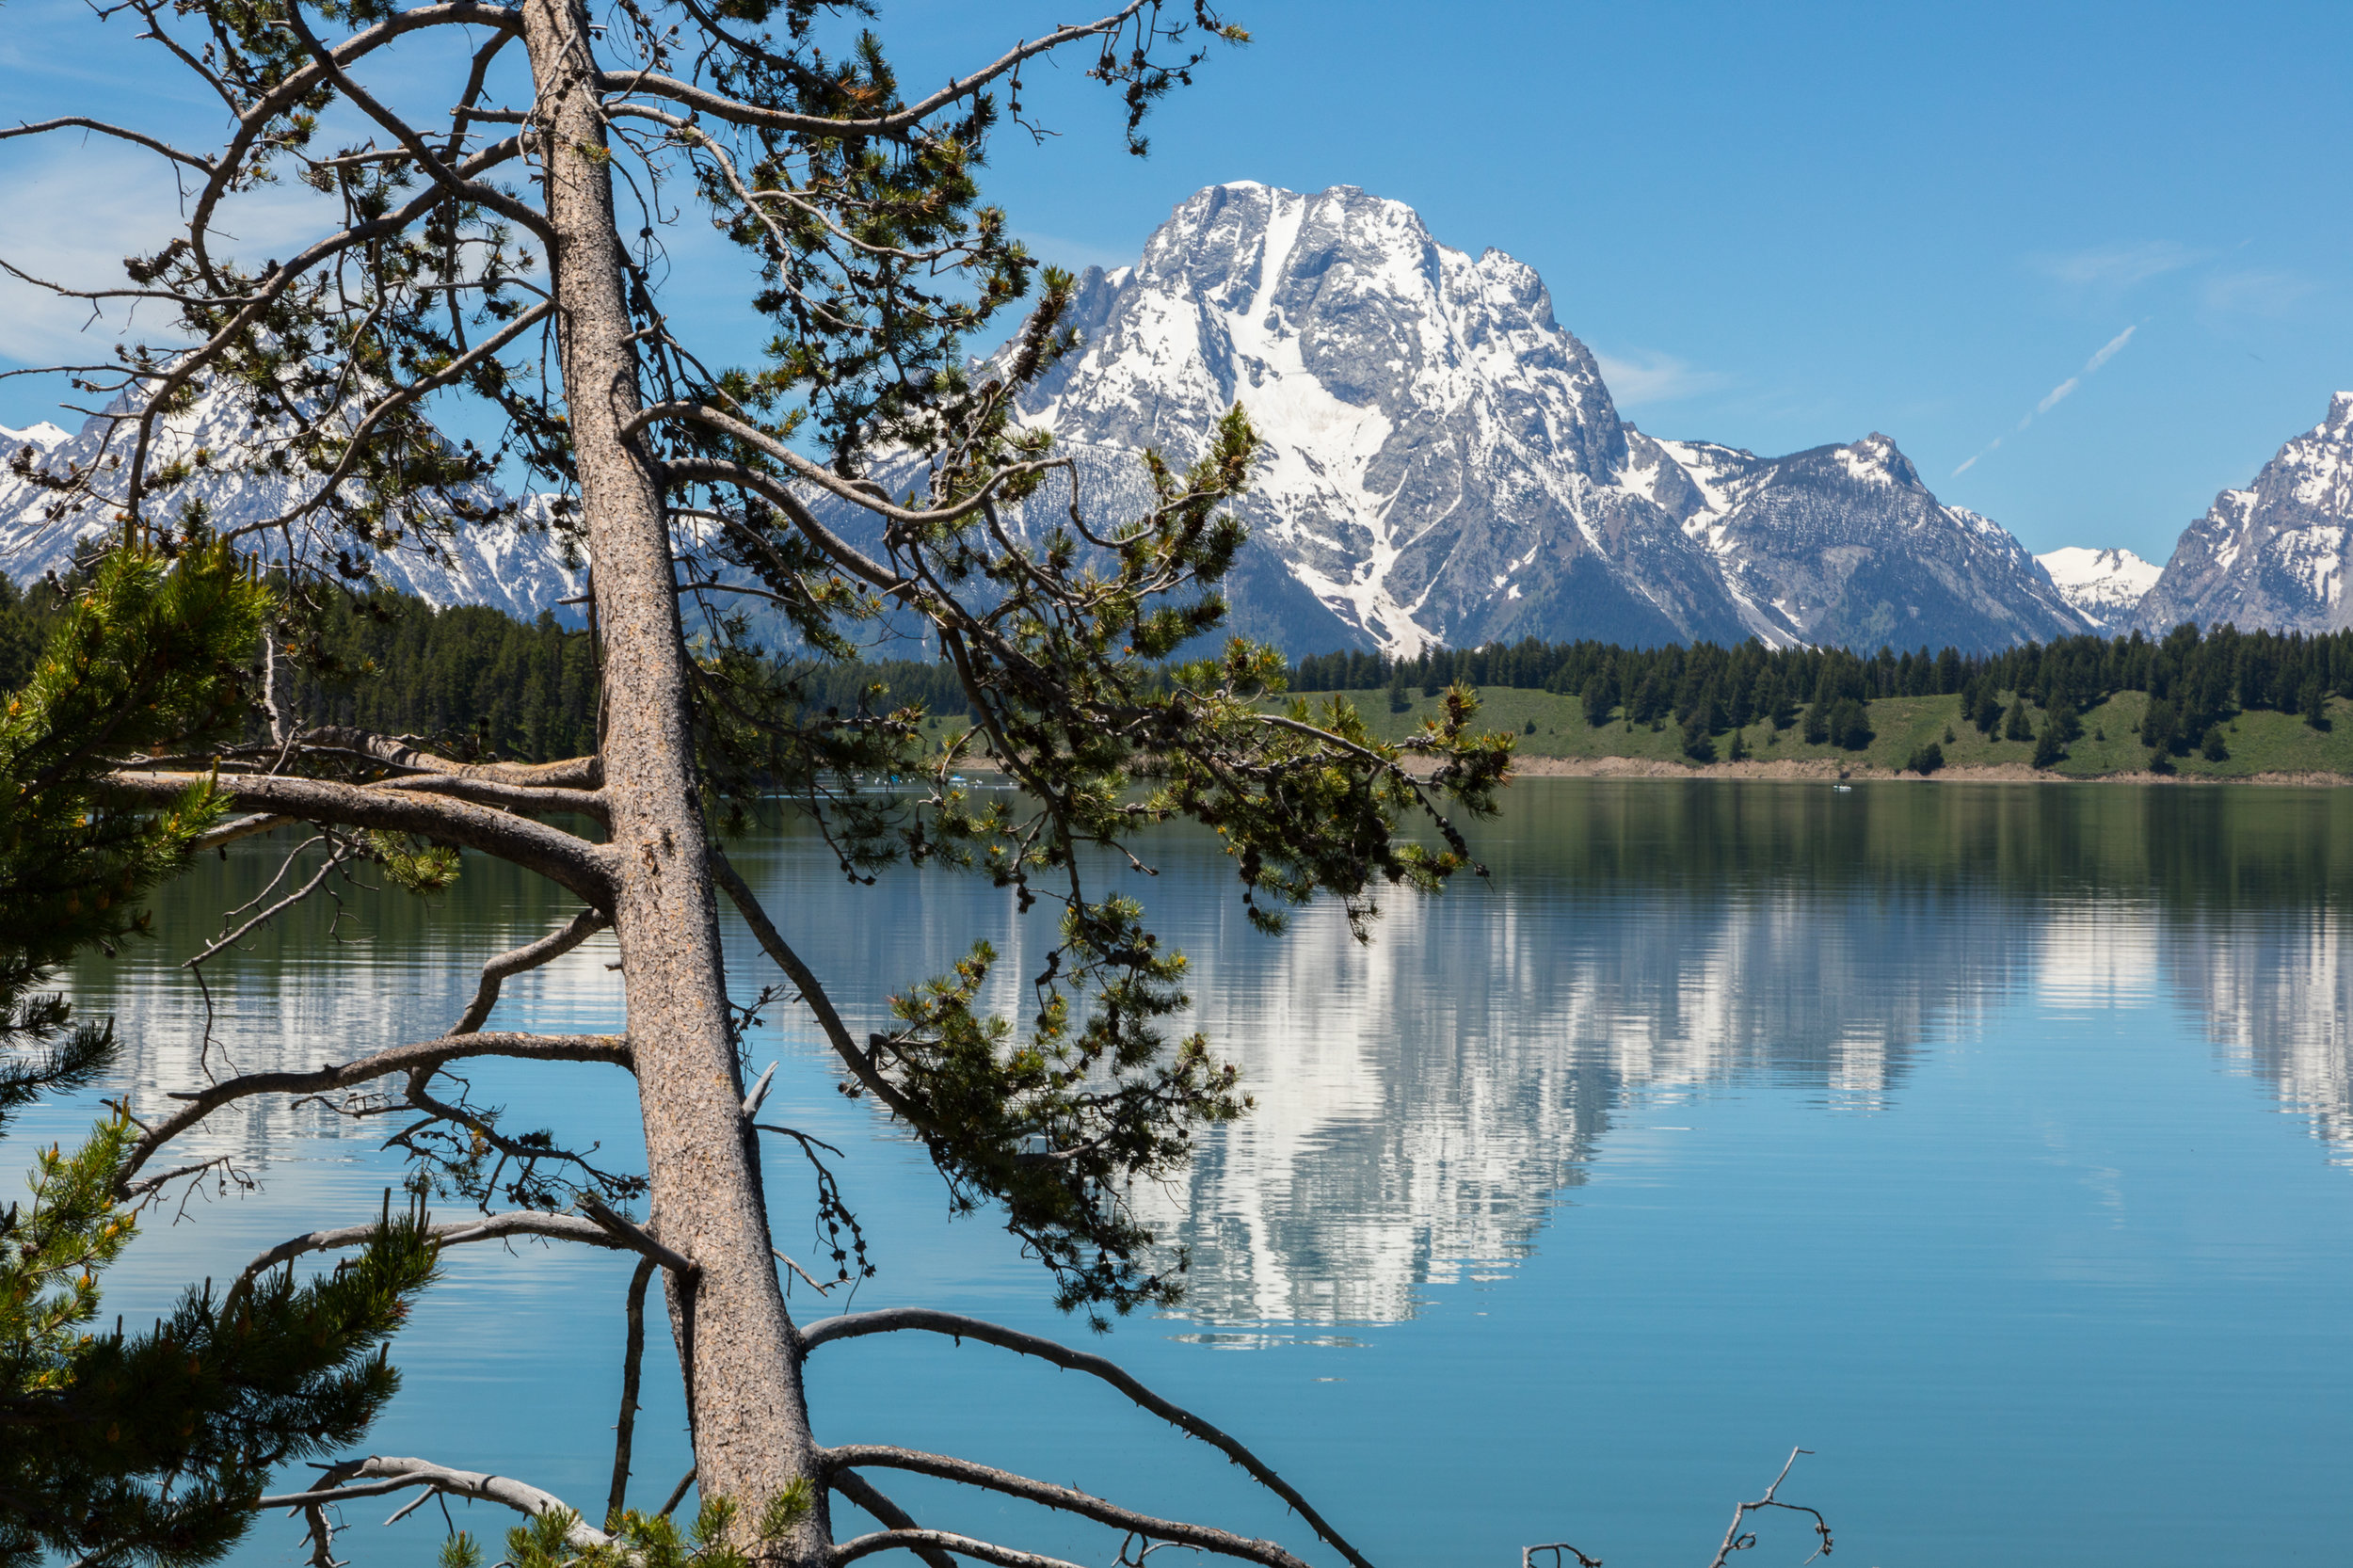 Reflection of Mount Moran in Jackson Lake, Image # 2491